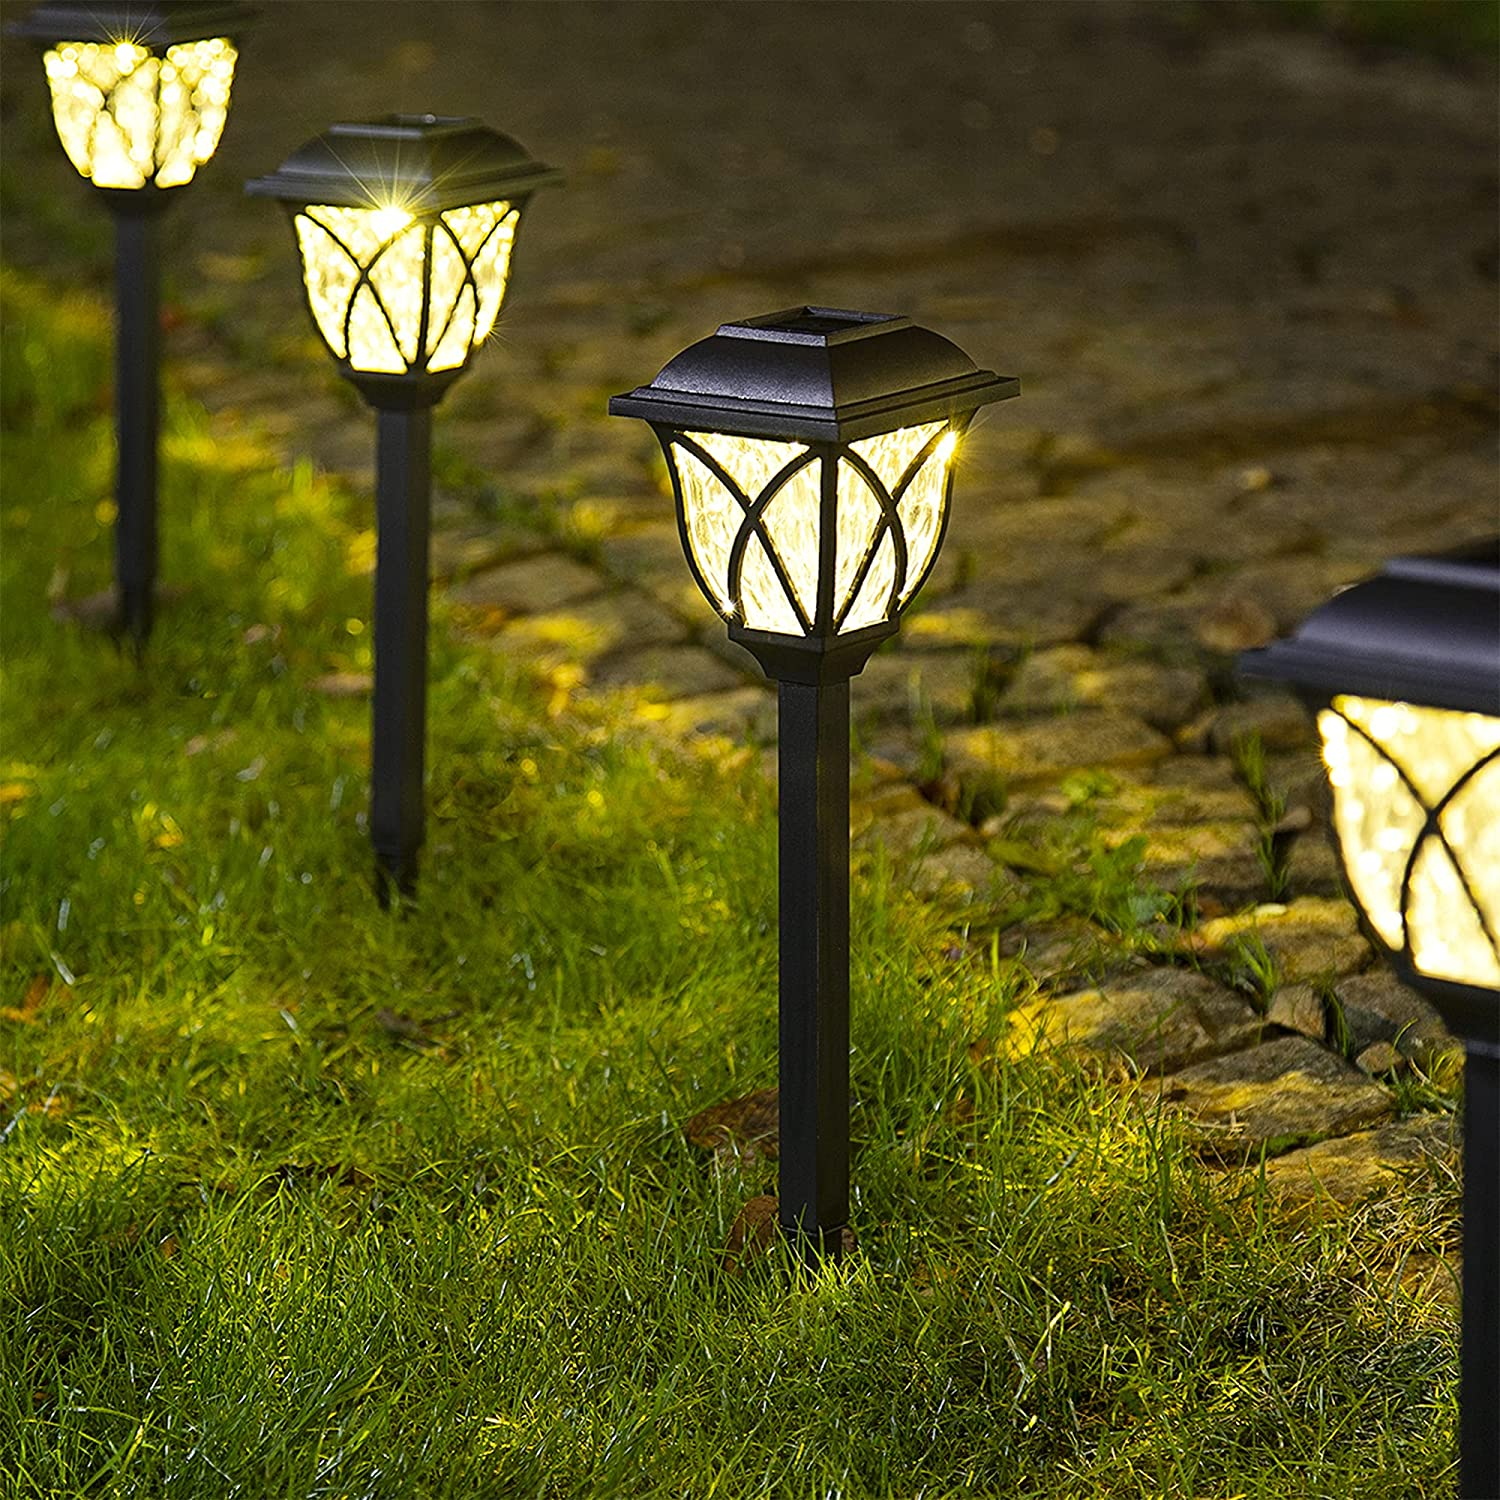 Solpex Solar Pathway Lights Wa Popular brand Max 68% OFF in the world Garden Outdoor LED